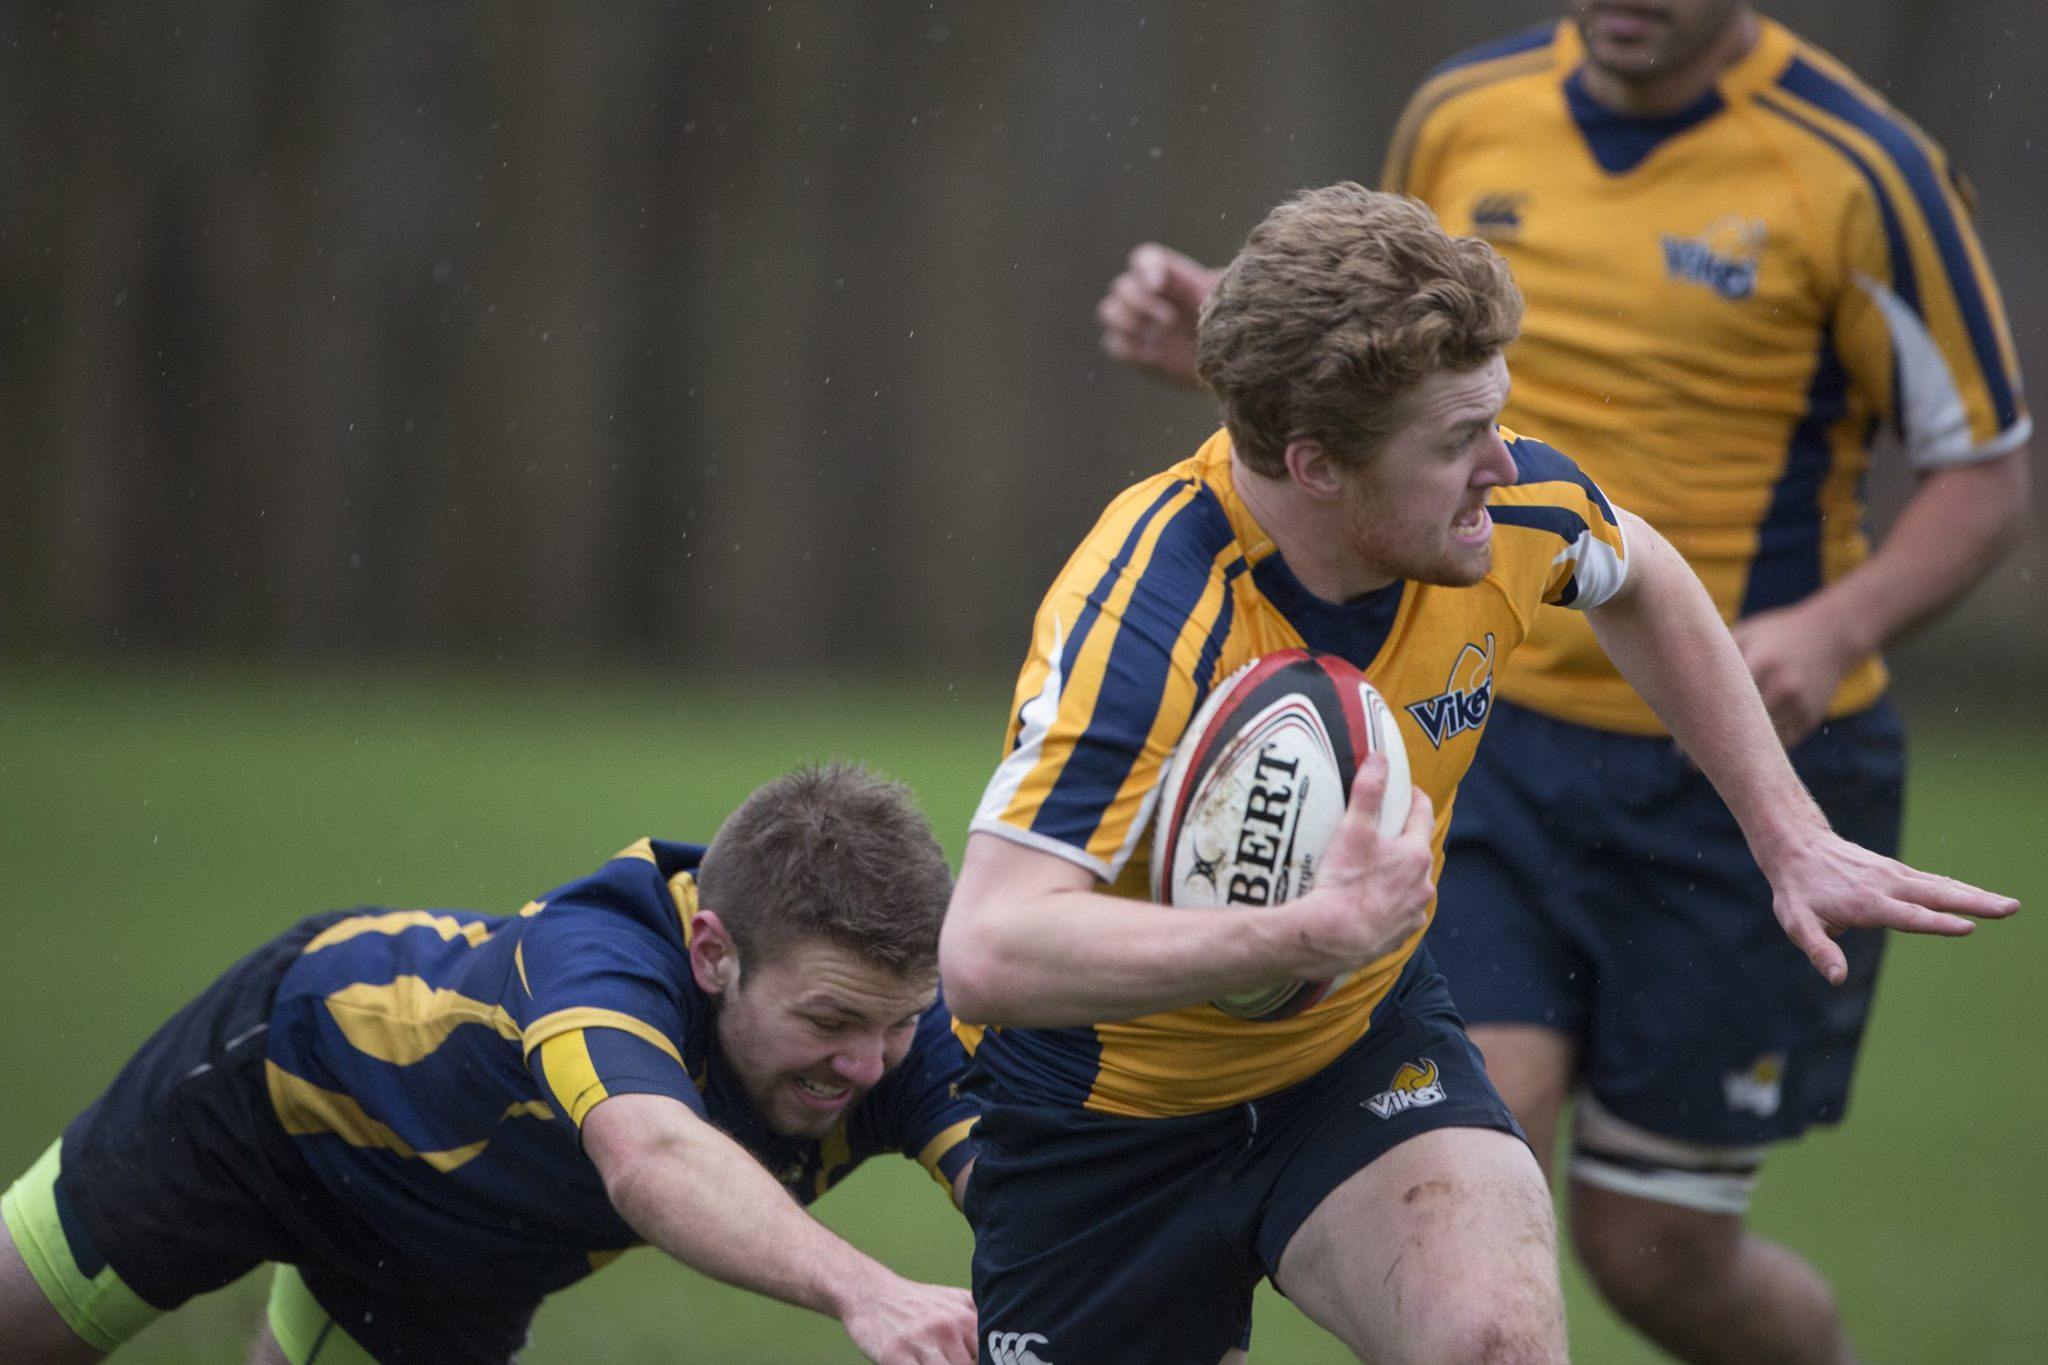 Spotlight on Rugby Canada